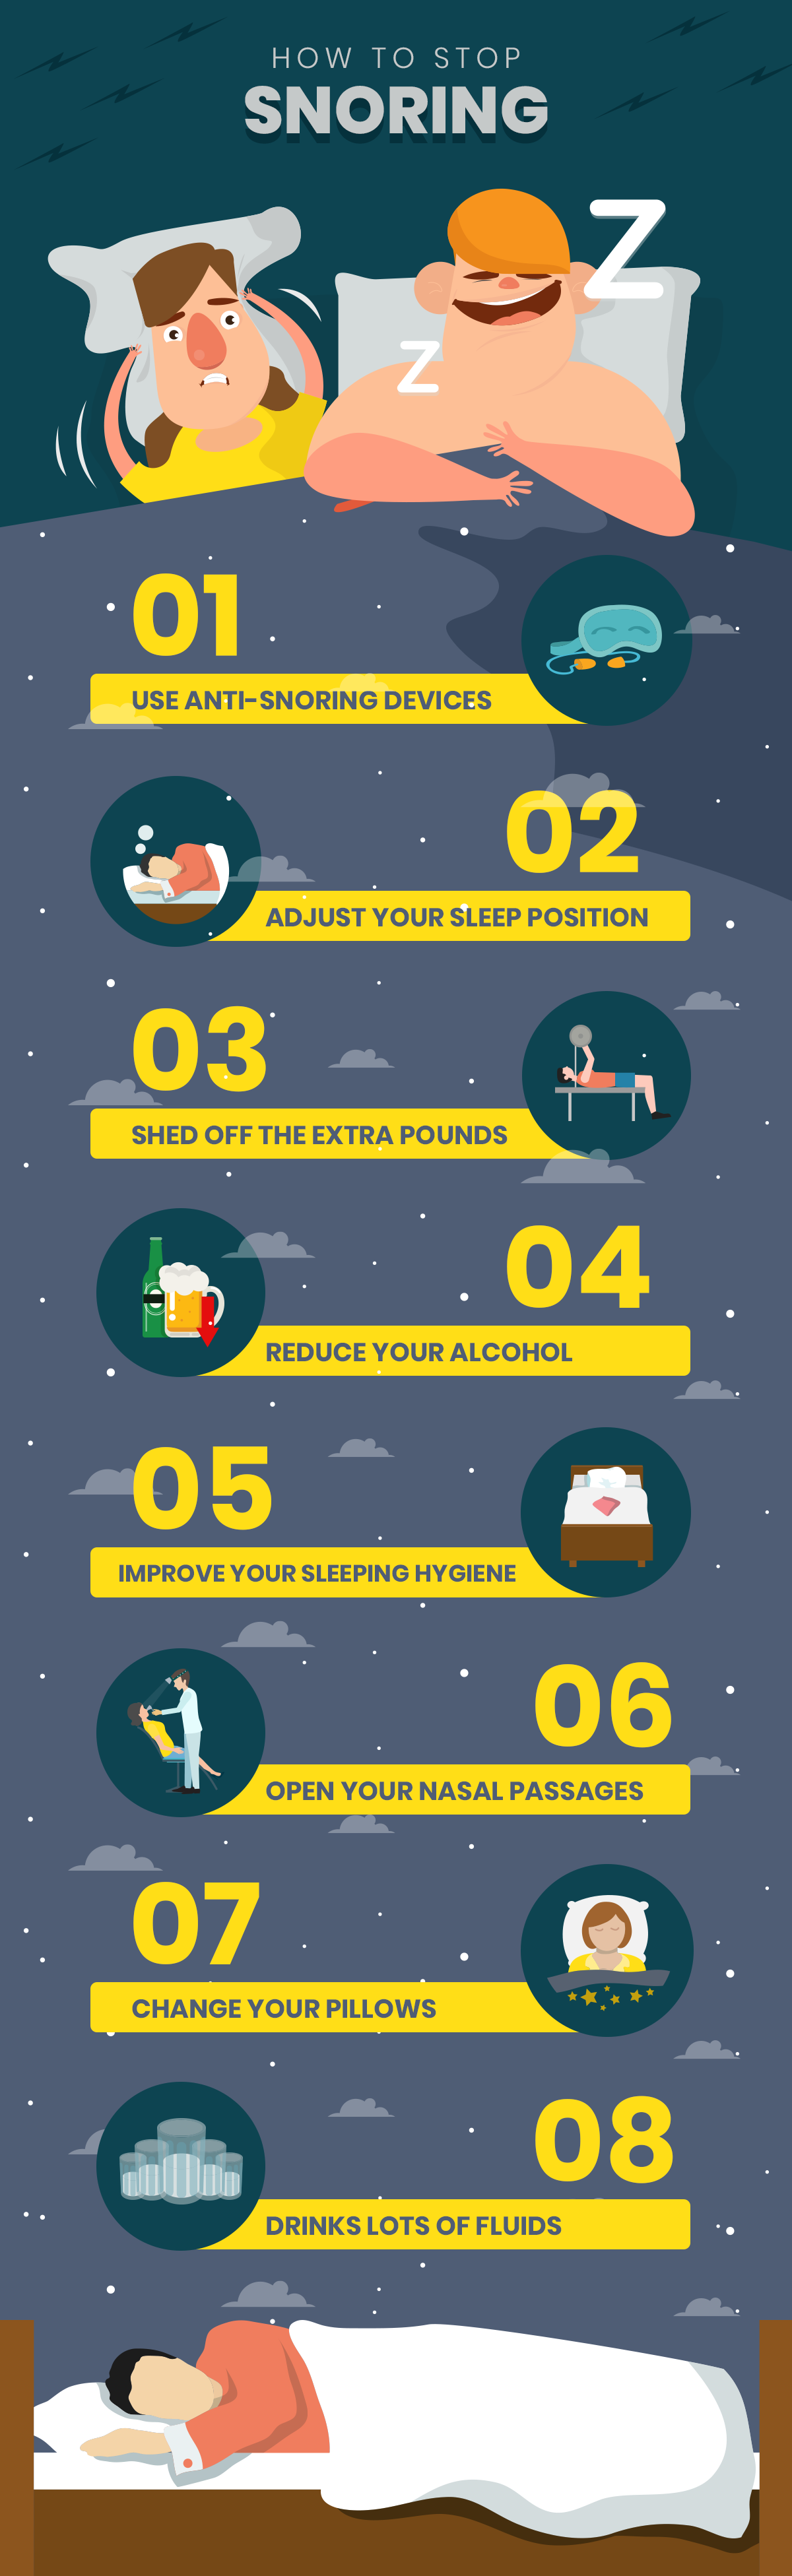 How to Stop Snoring #Infographic